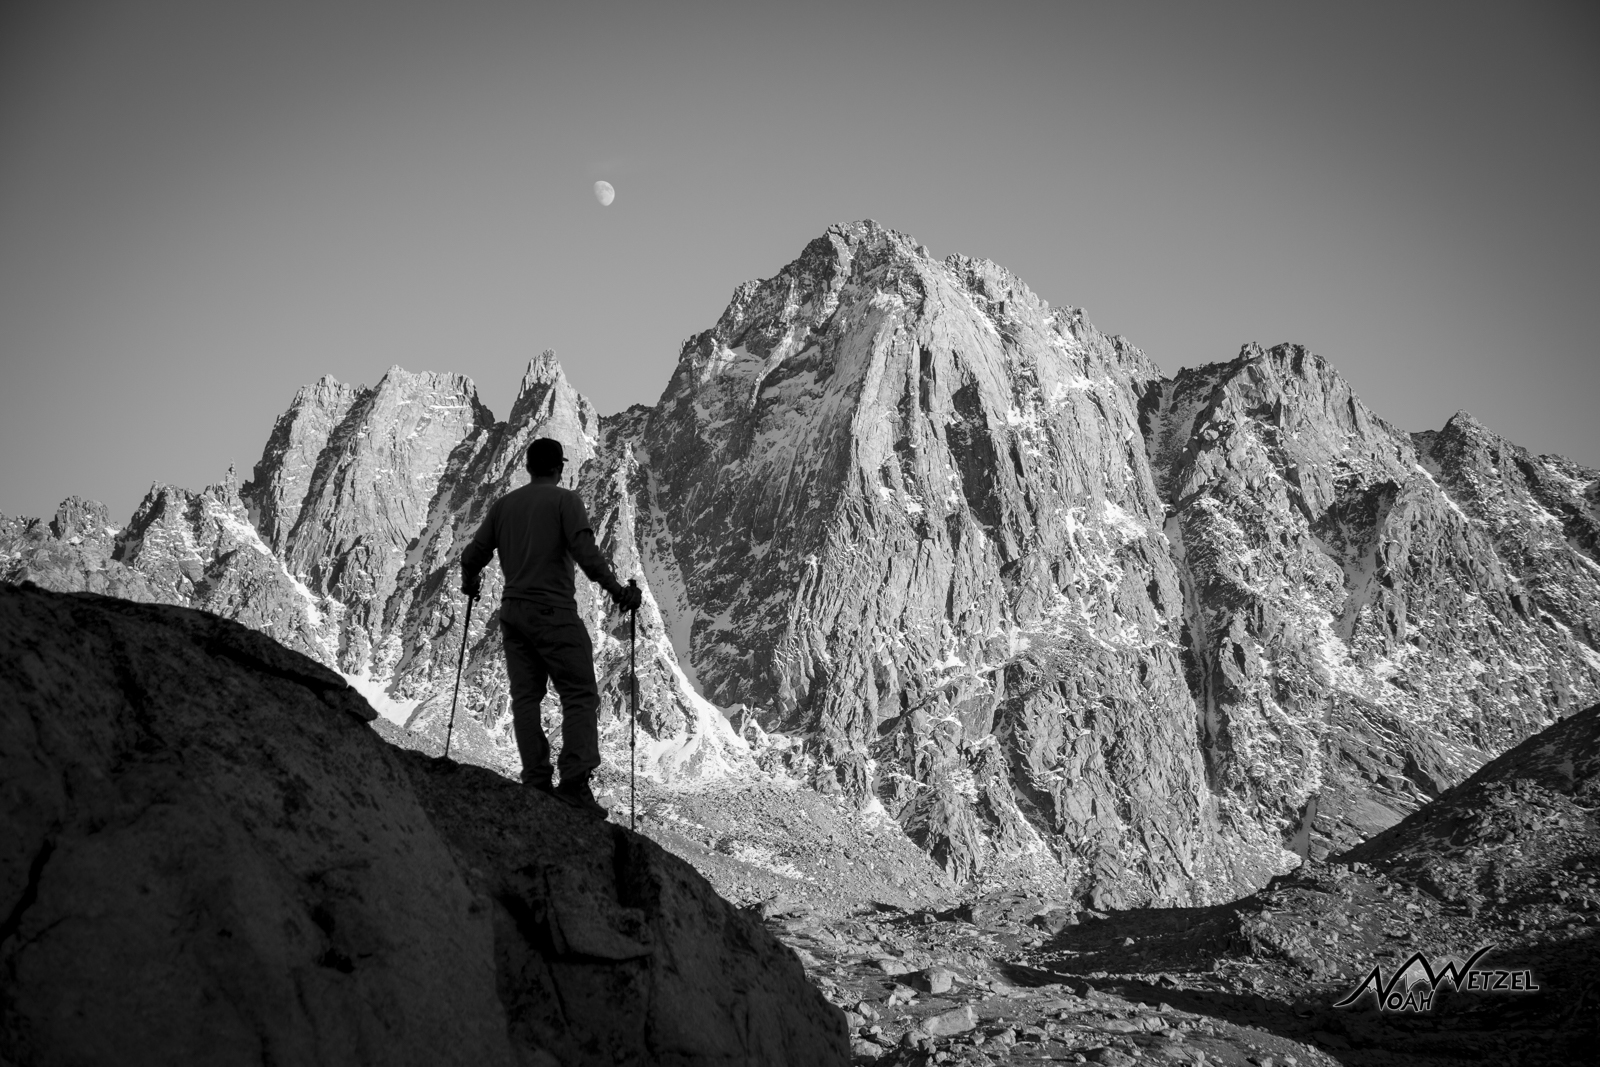 Brother Benny overlooking Harrower Peak and Indian Basin on our second day in the Wind Rivers.